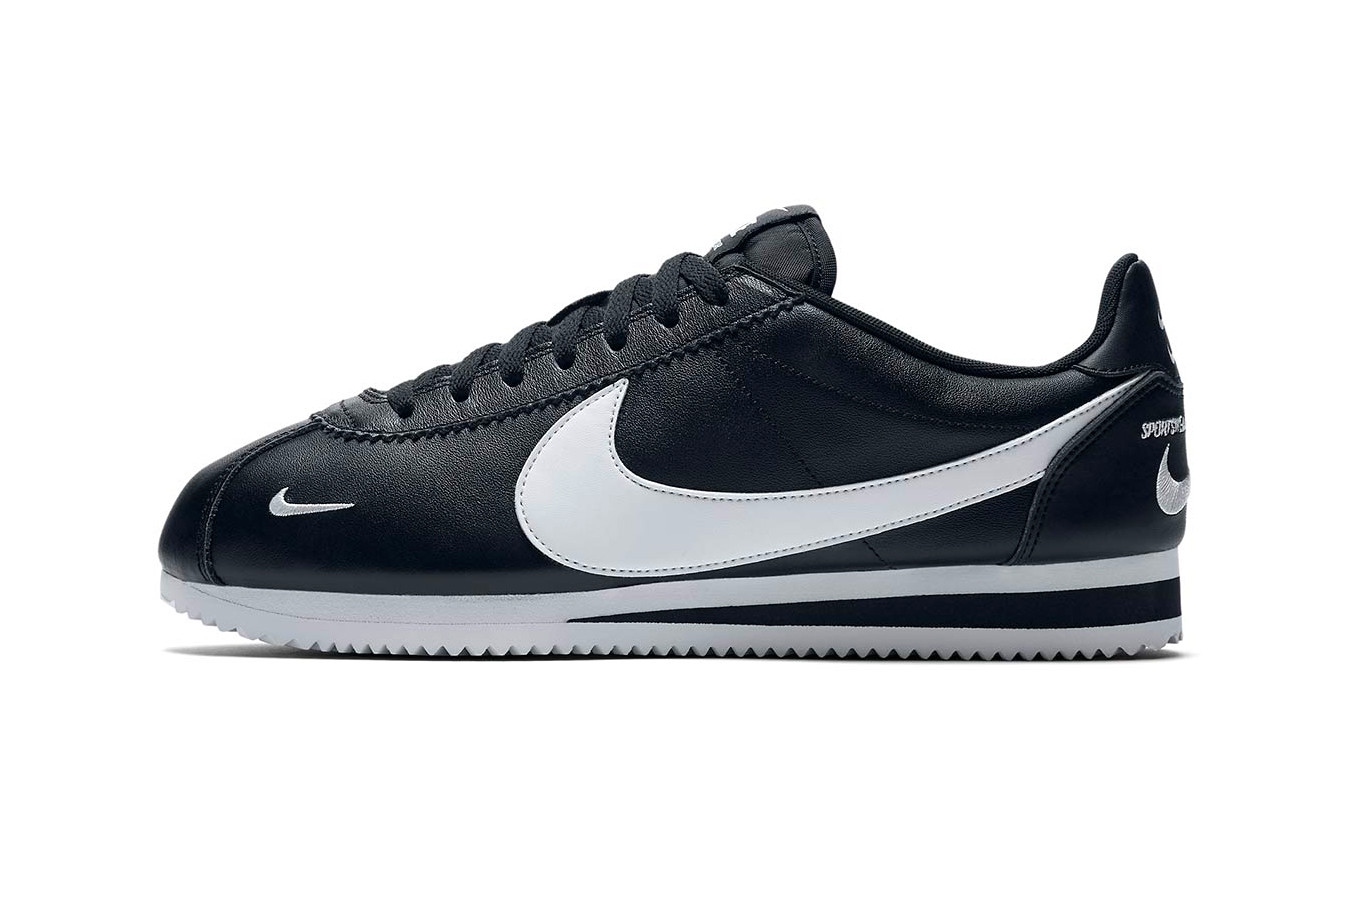 Nike Unveils New Cortez With a Swarm of